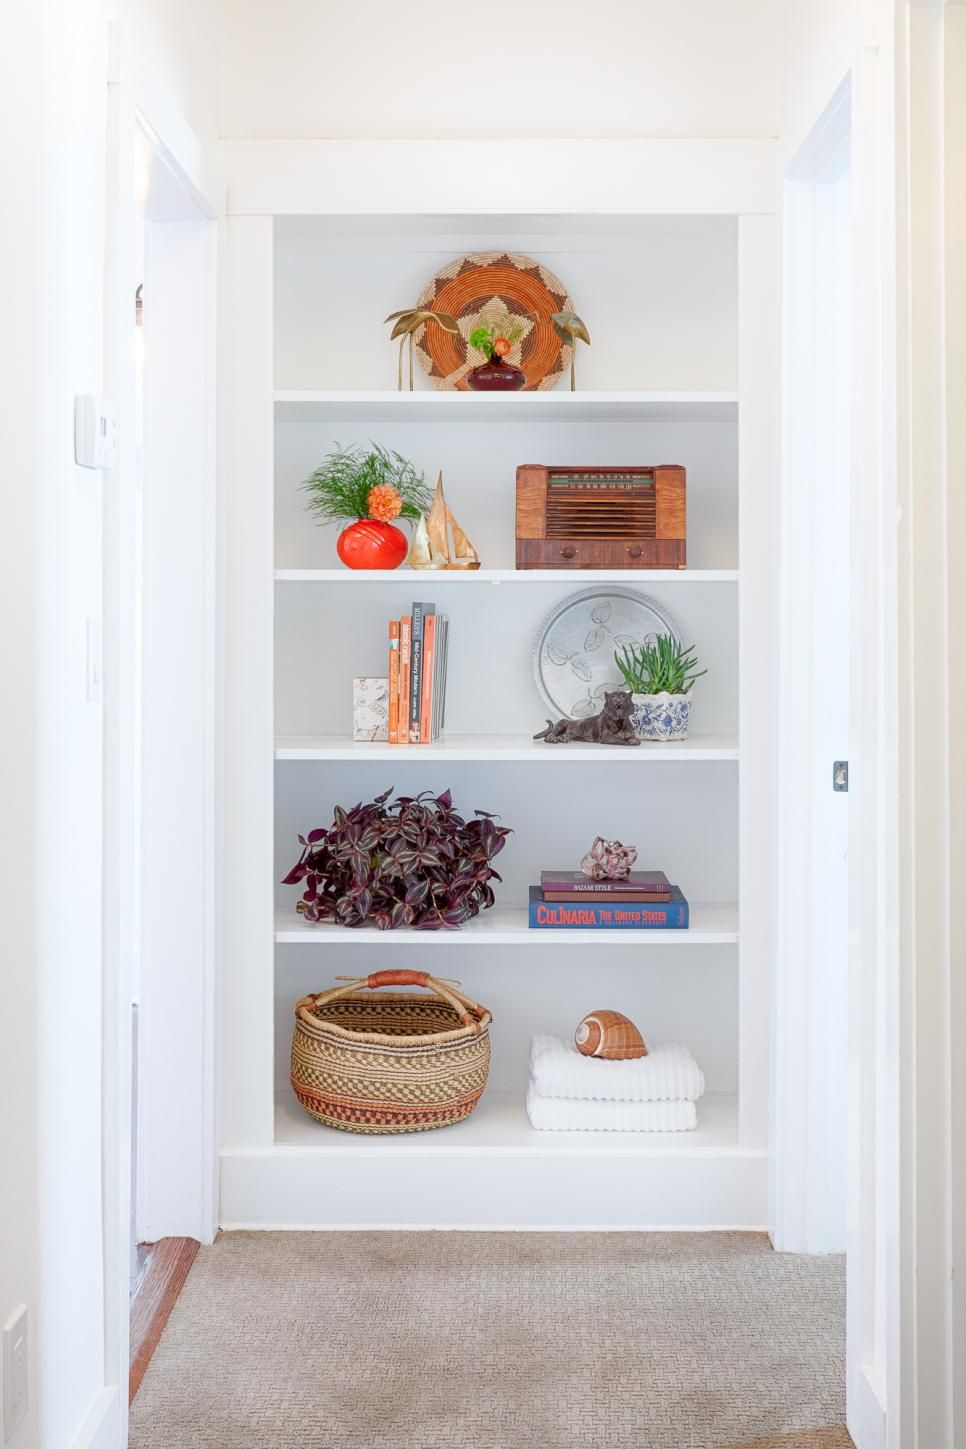 Instead+of+stuffing+this+built-in+bookshelf+full,+only+a+few+selected+items+are+included+allowing+each+one+to+be+seen+and+appreciated.+Houseplants+add+a+welcome+natural+element.